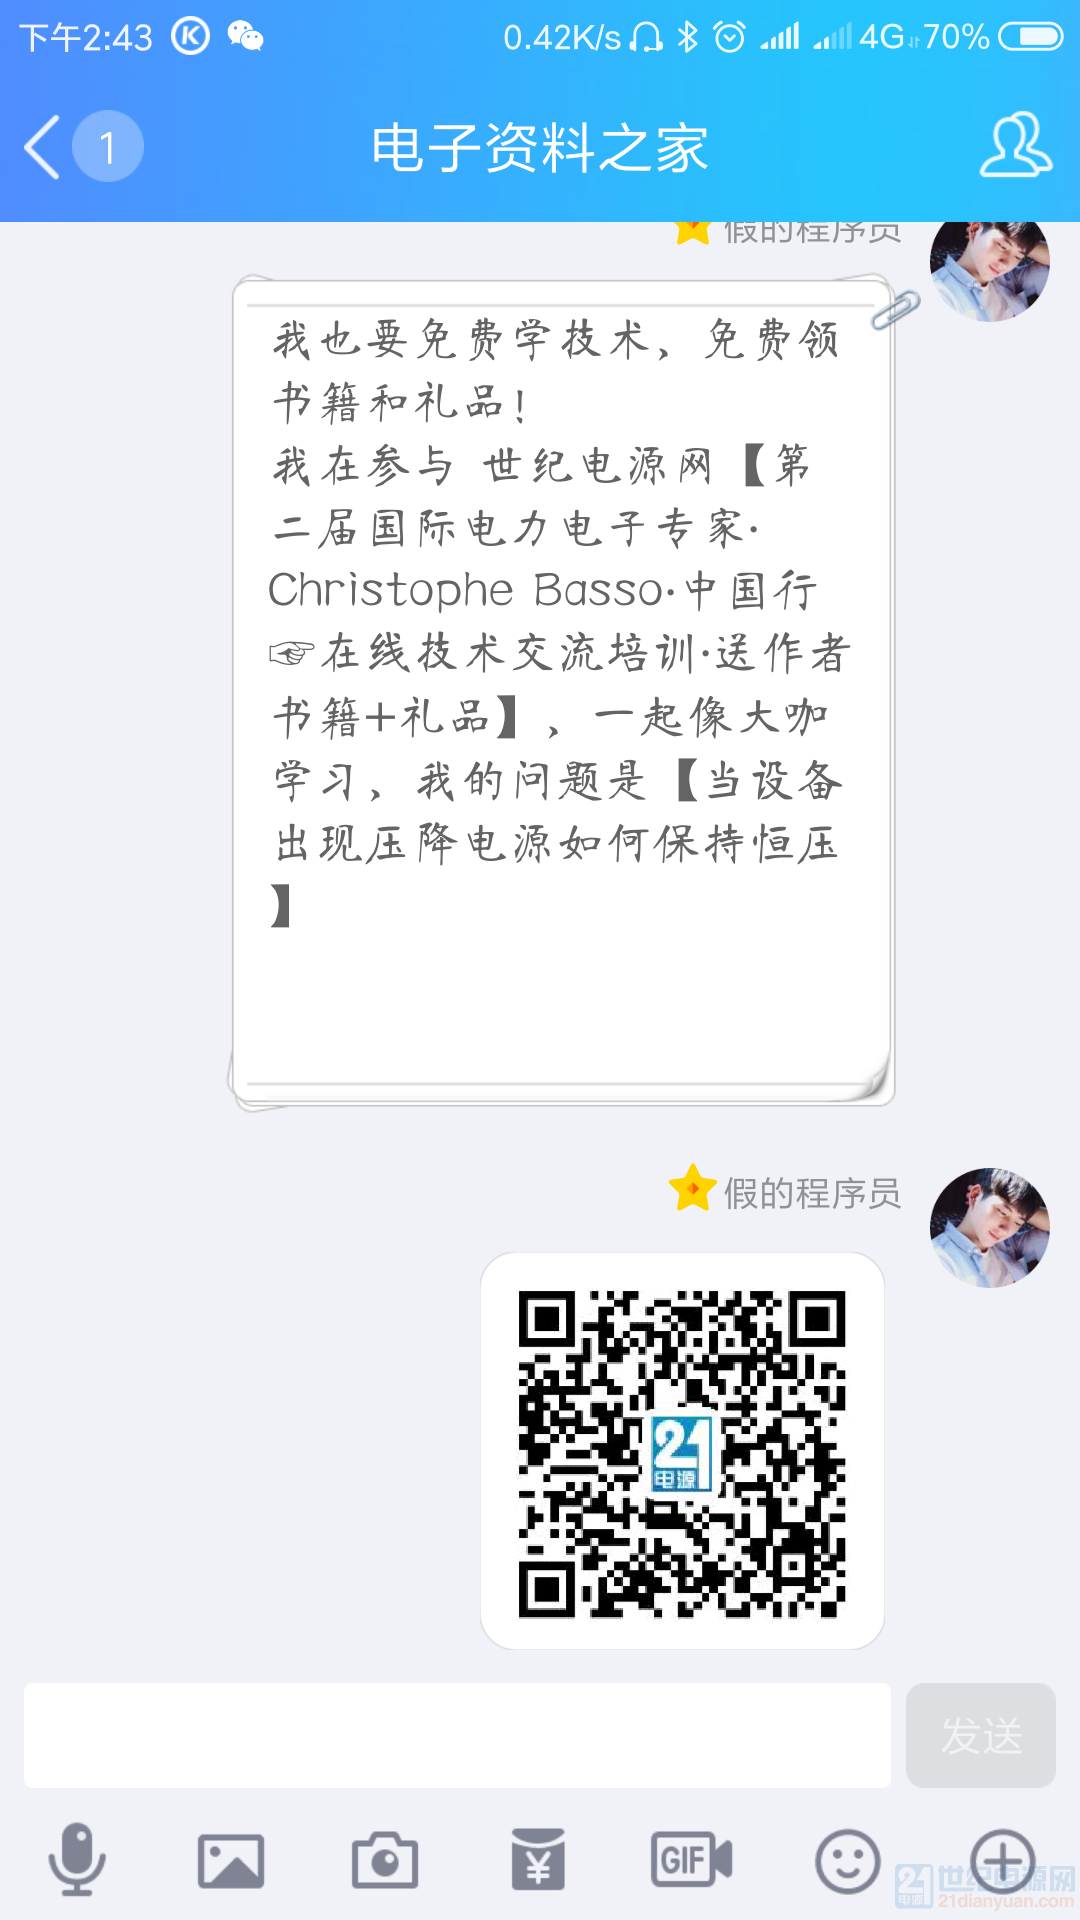 Screenshot_2018-10-12-14-43-24-037_com.tencent.mobileqq.png